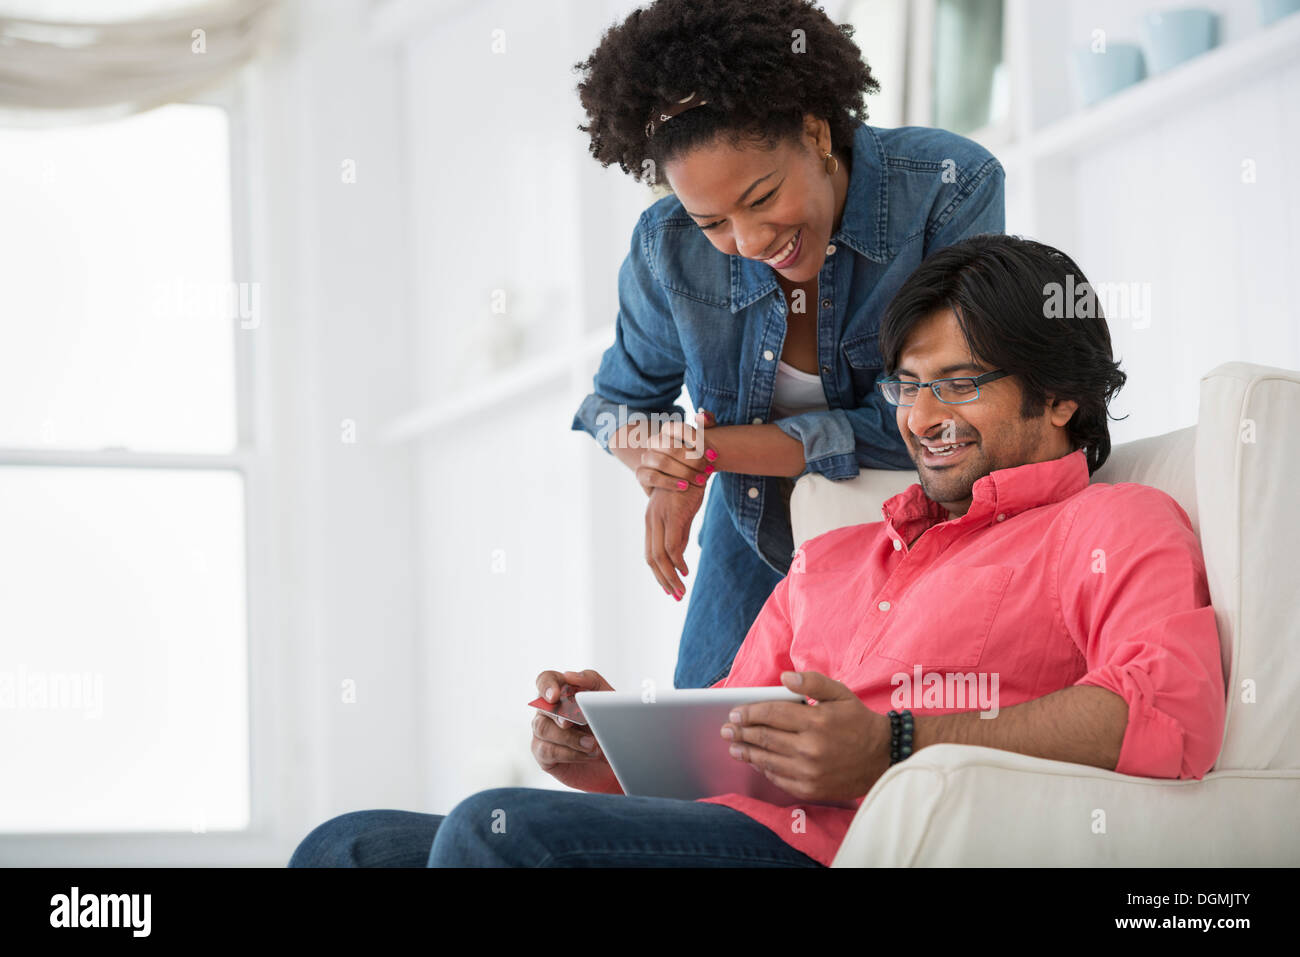 Office life. A man and woman looking at a digital tablet. Stock Photo